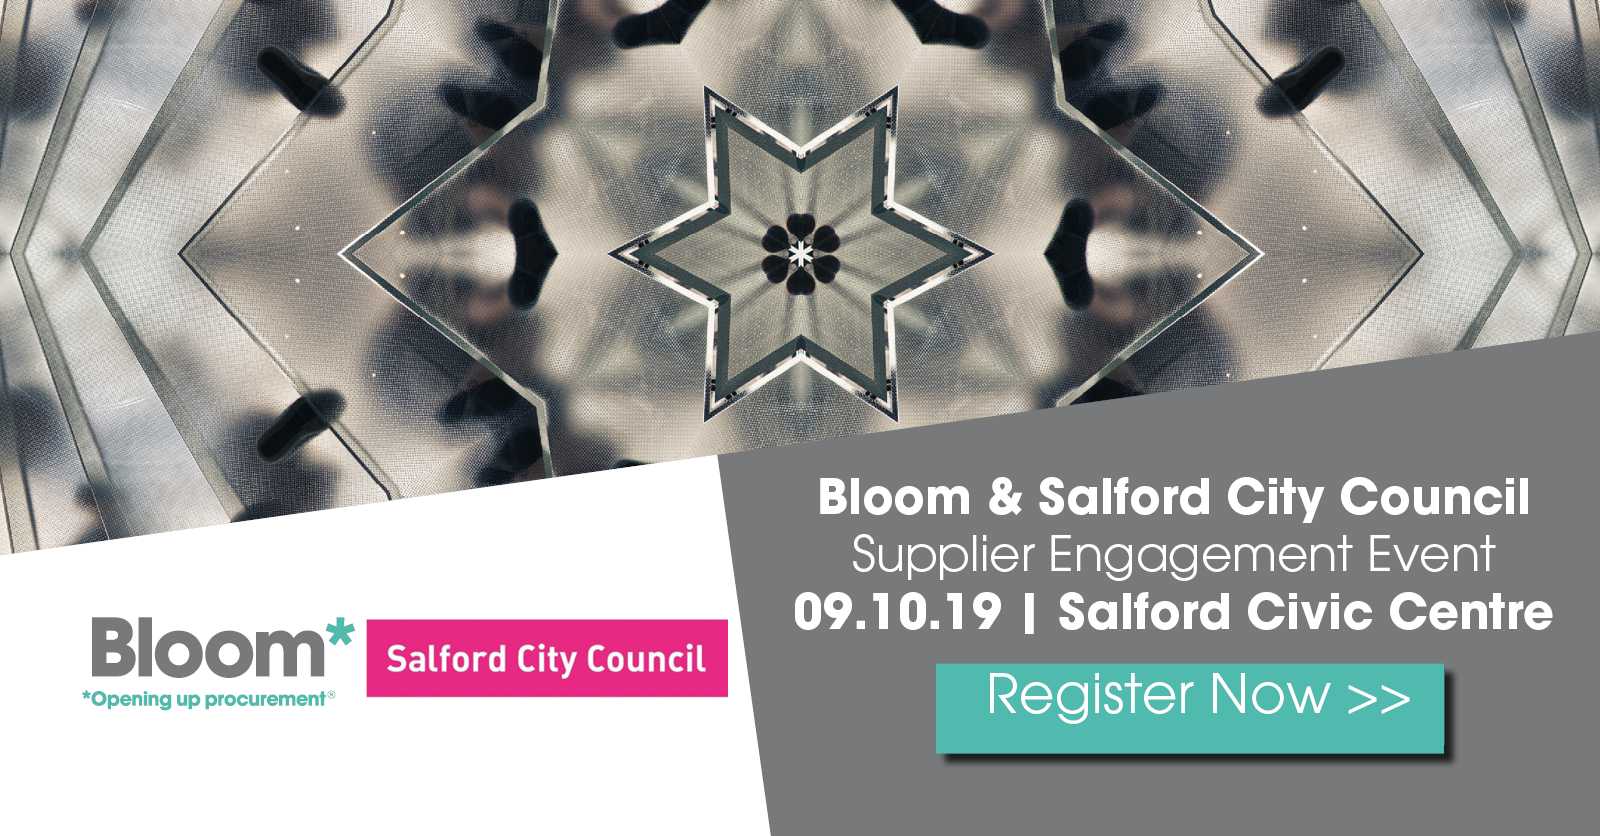 Bloom and Salford City Council Supplier Engagement Event